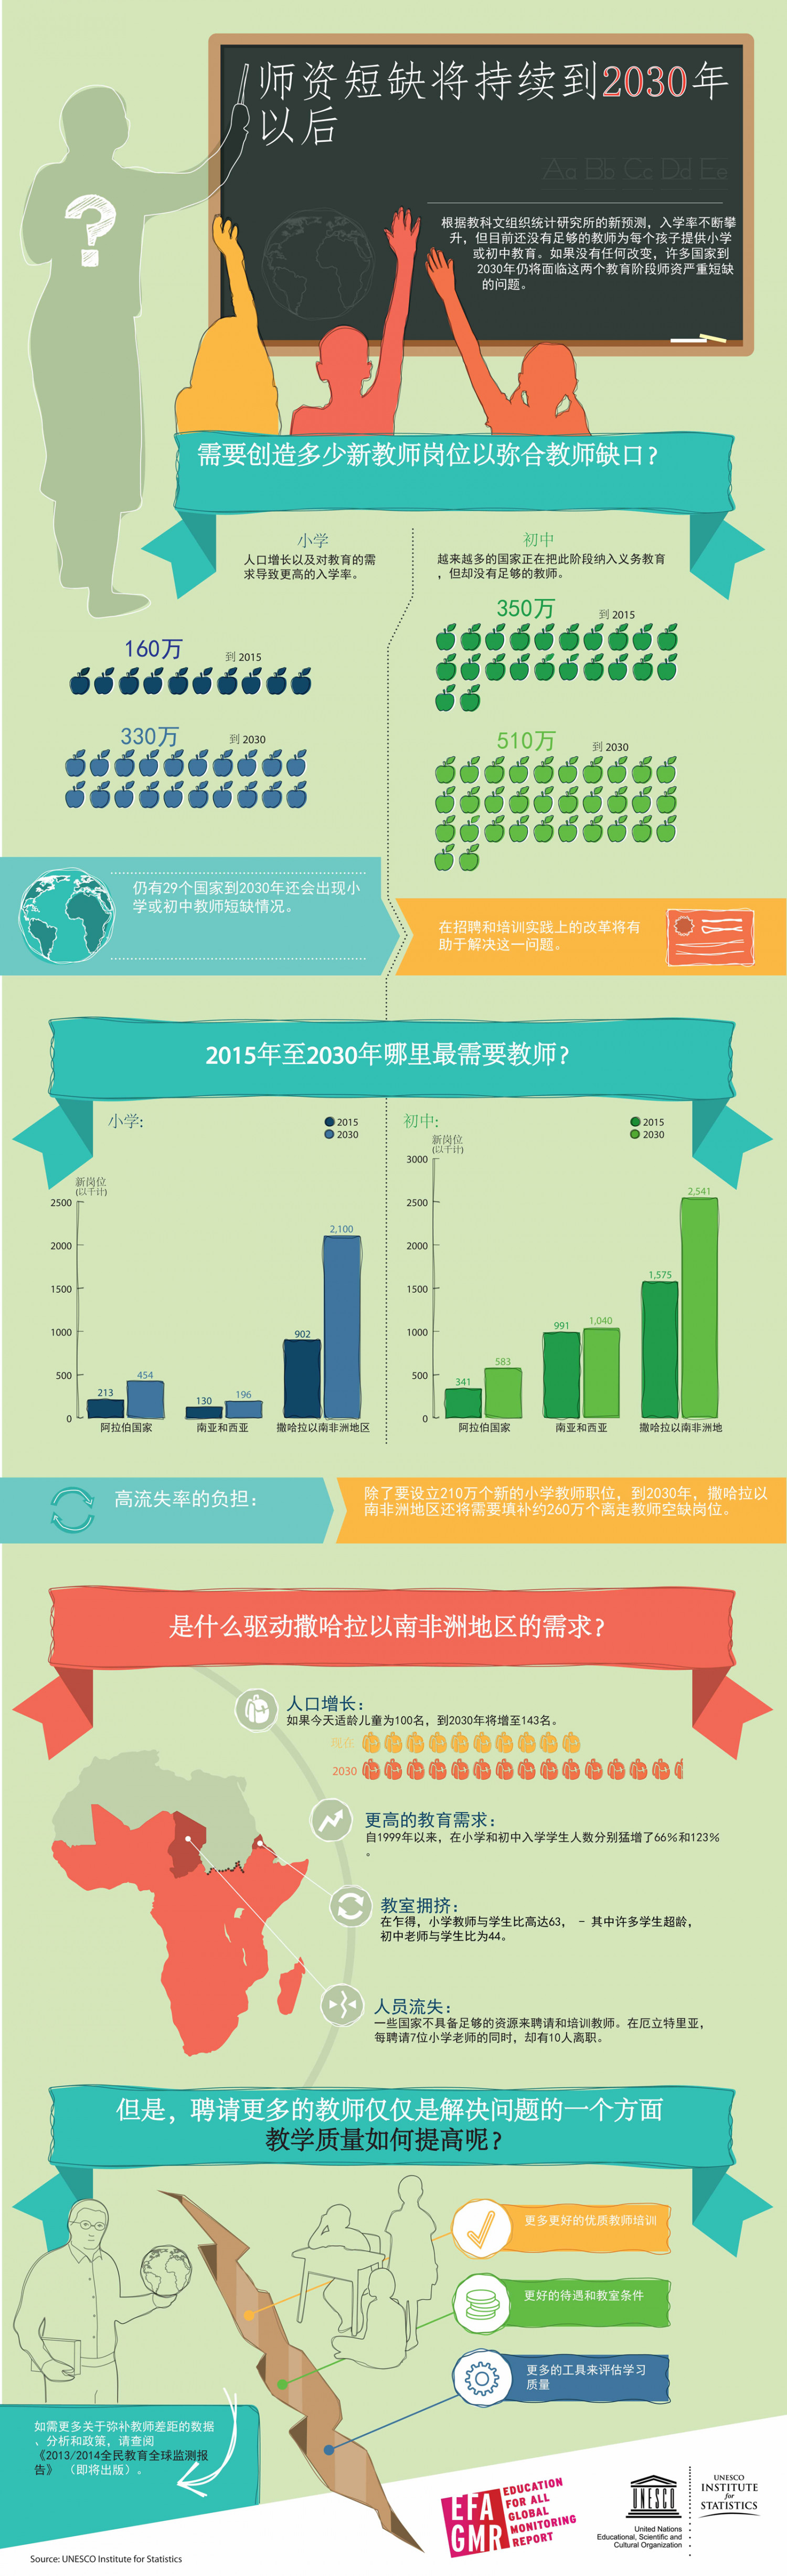 Chronic Teacher Shortage Chinese Infographic